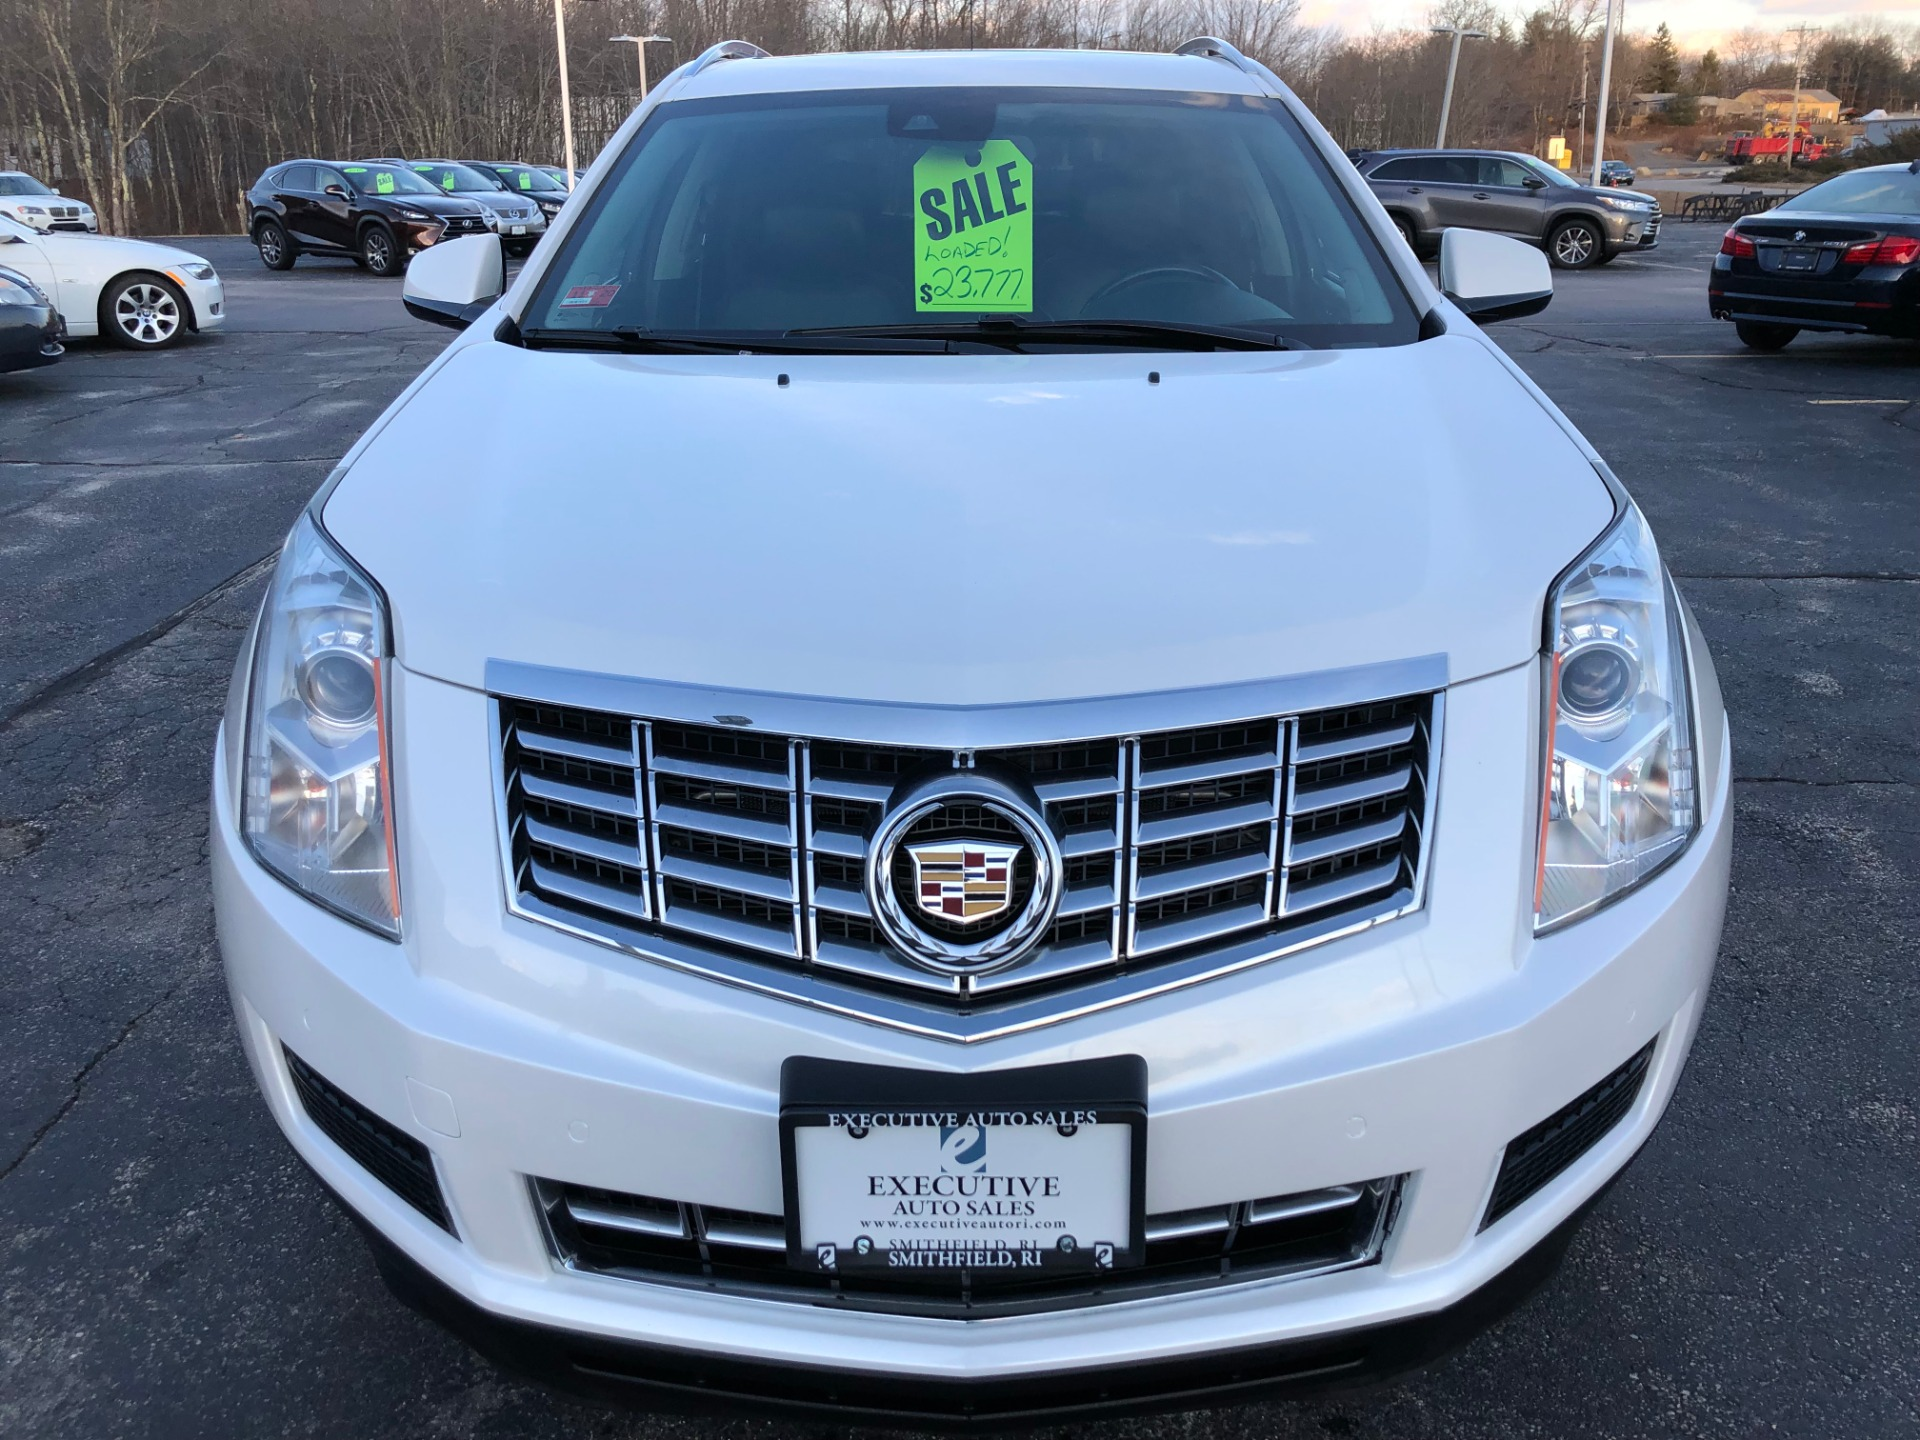 Used 2015 CADILLAC SRX LUXURY COLLECTION For Sale ($22,900